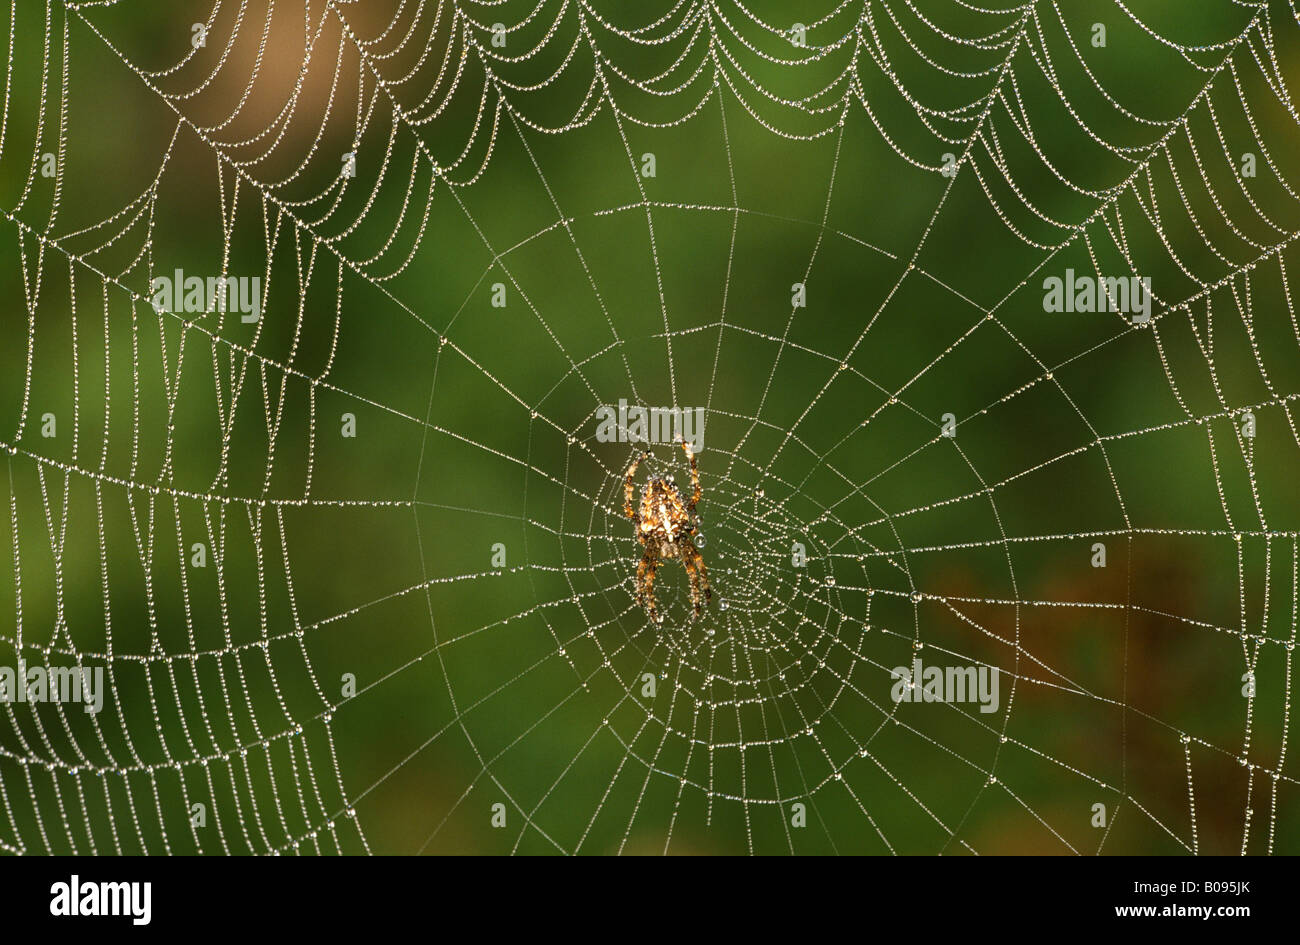 European Garden Spider or Cross Spider (Araneus diadematus), spiderweb - Stock Image